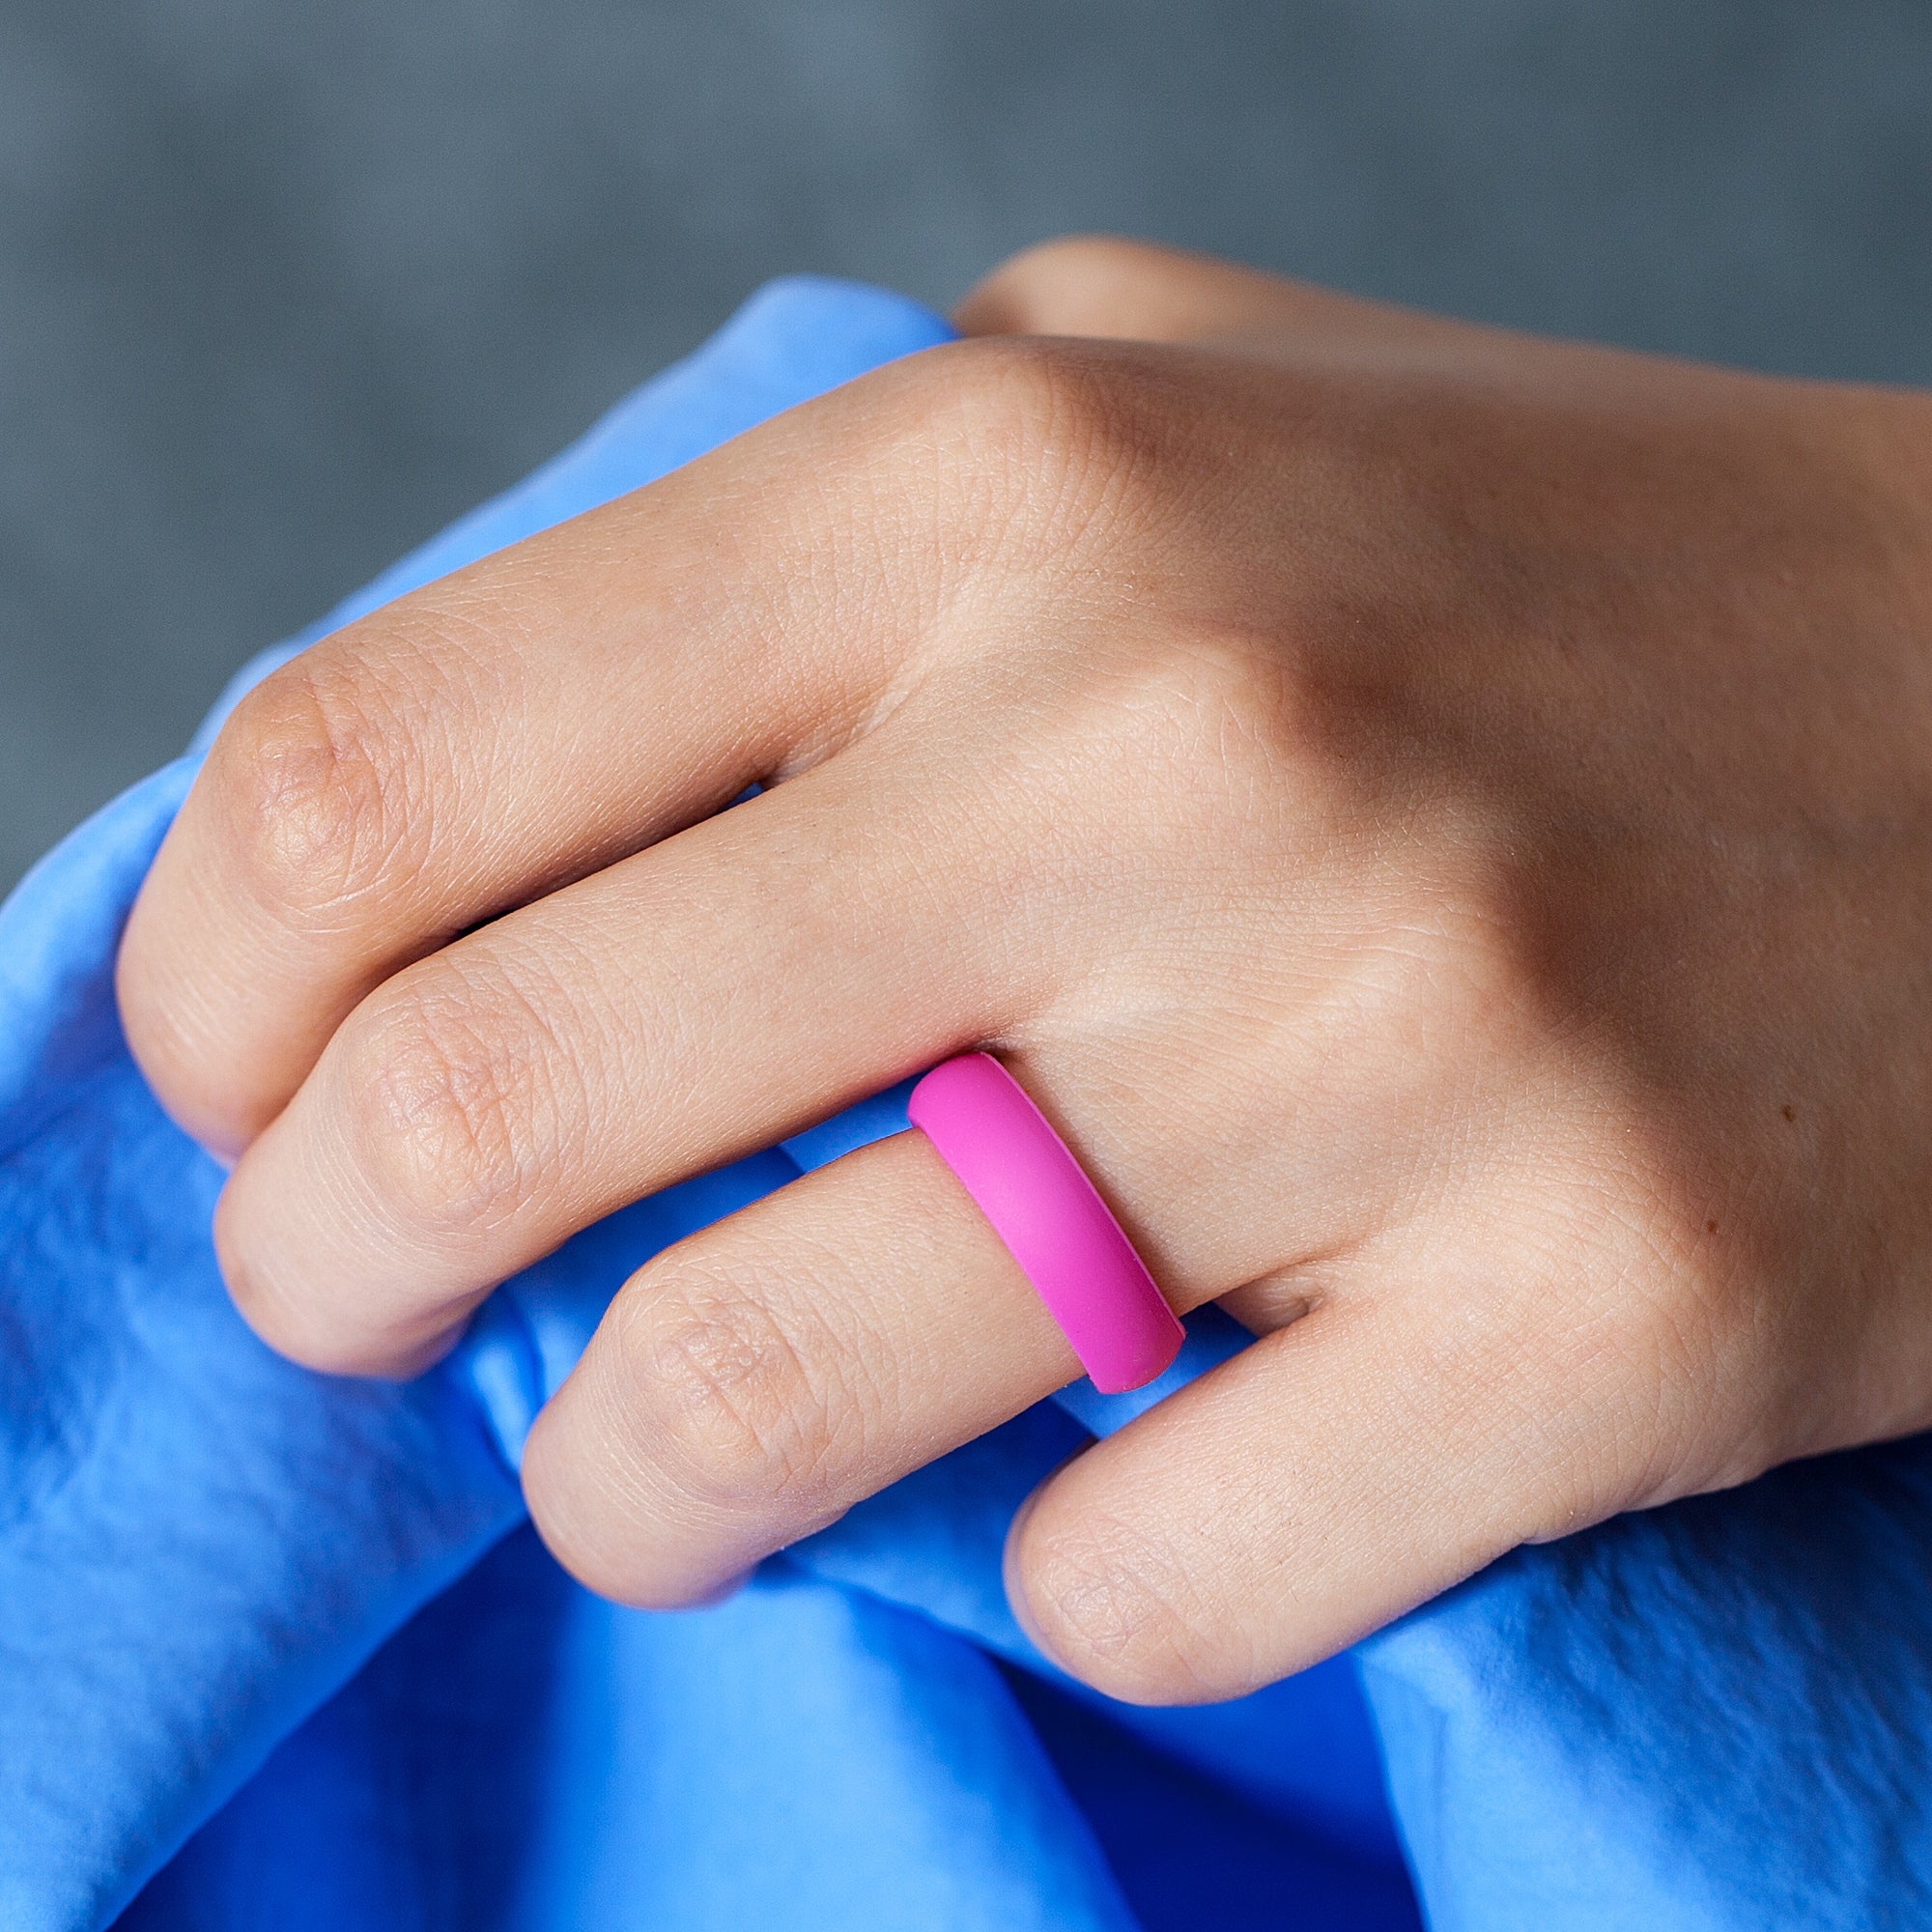 Women's Rings 4 Pack - Rose Pink, Blue, White, Teal